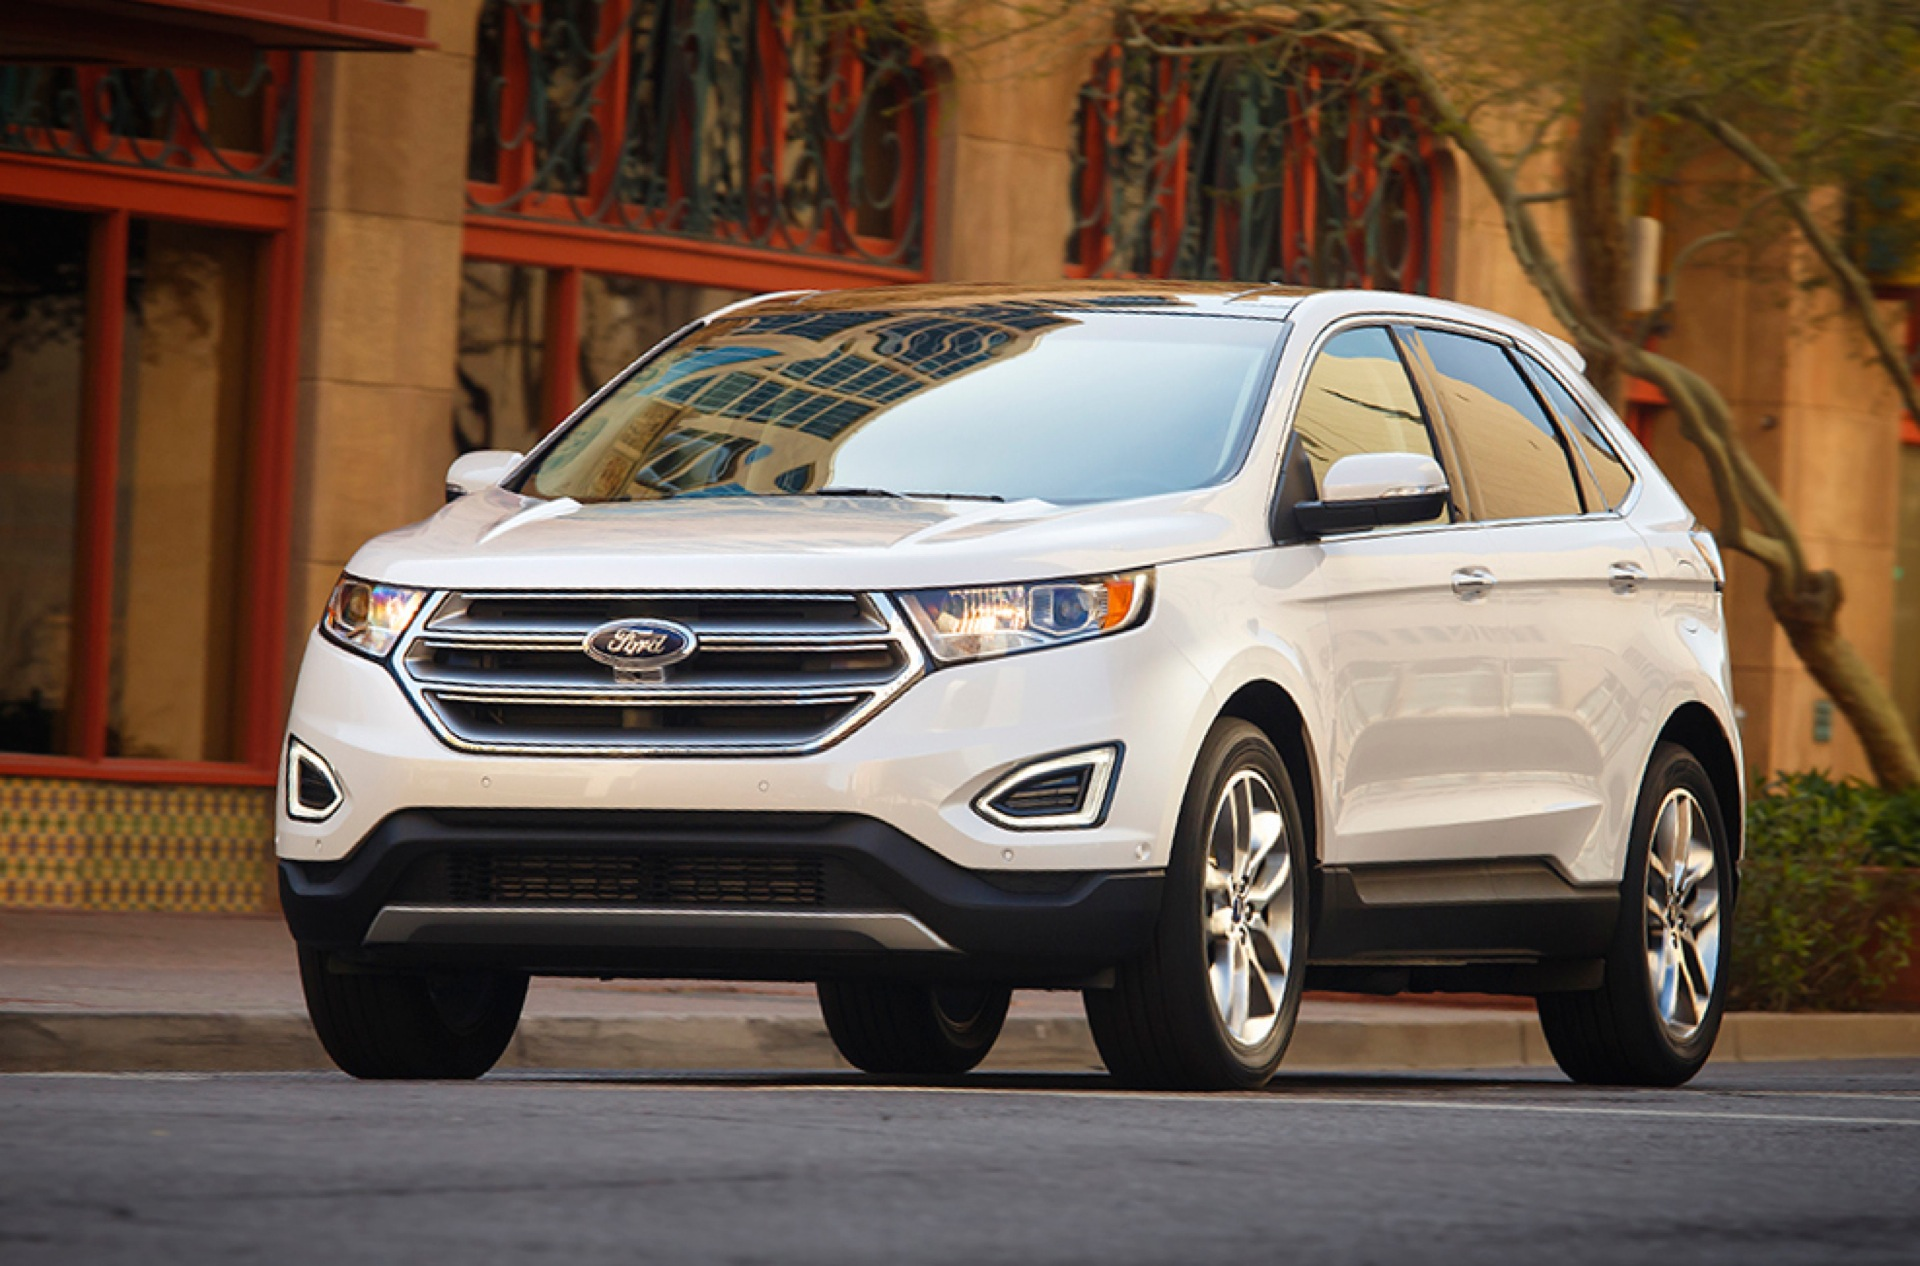 2015 Ford Edge Initial Quality Study Grand Cherokee